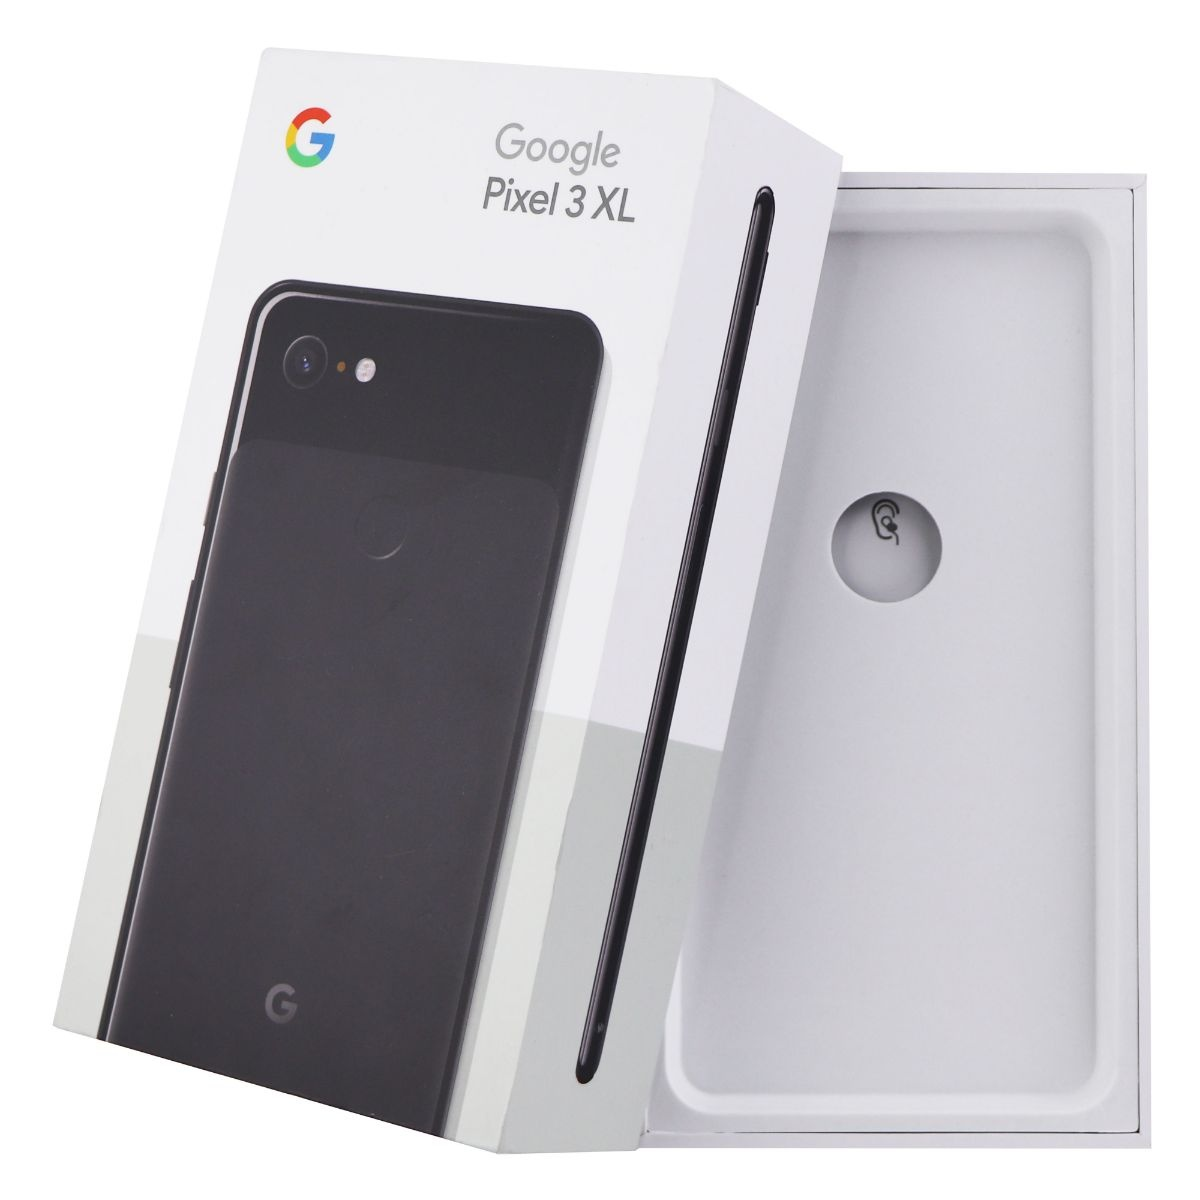 RETAIL BOX - Google Pixel 3 XL - 128GB Just Black - Tray Included - NO DEVICE